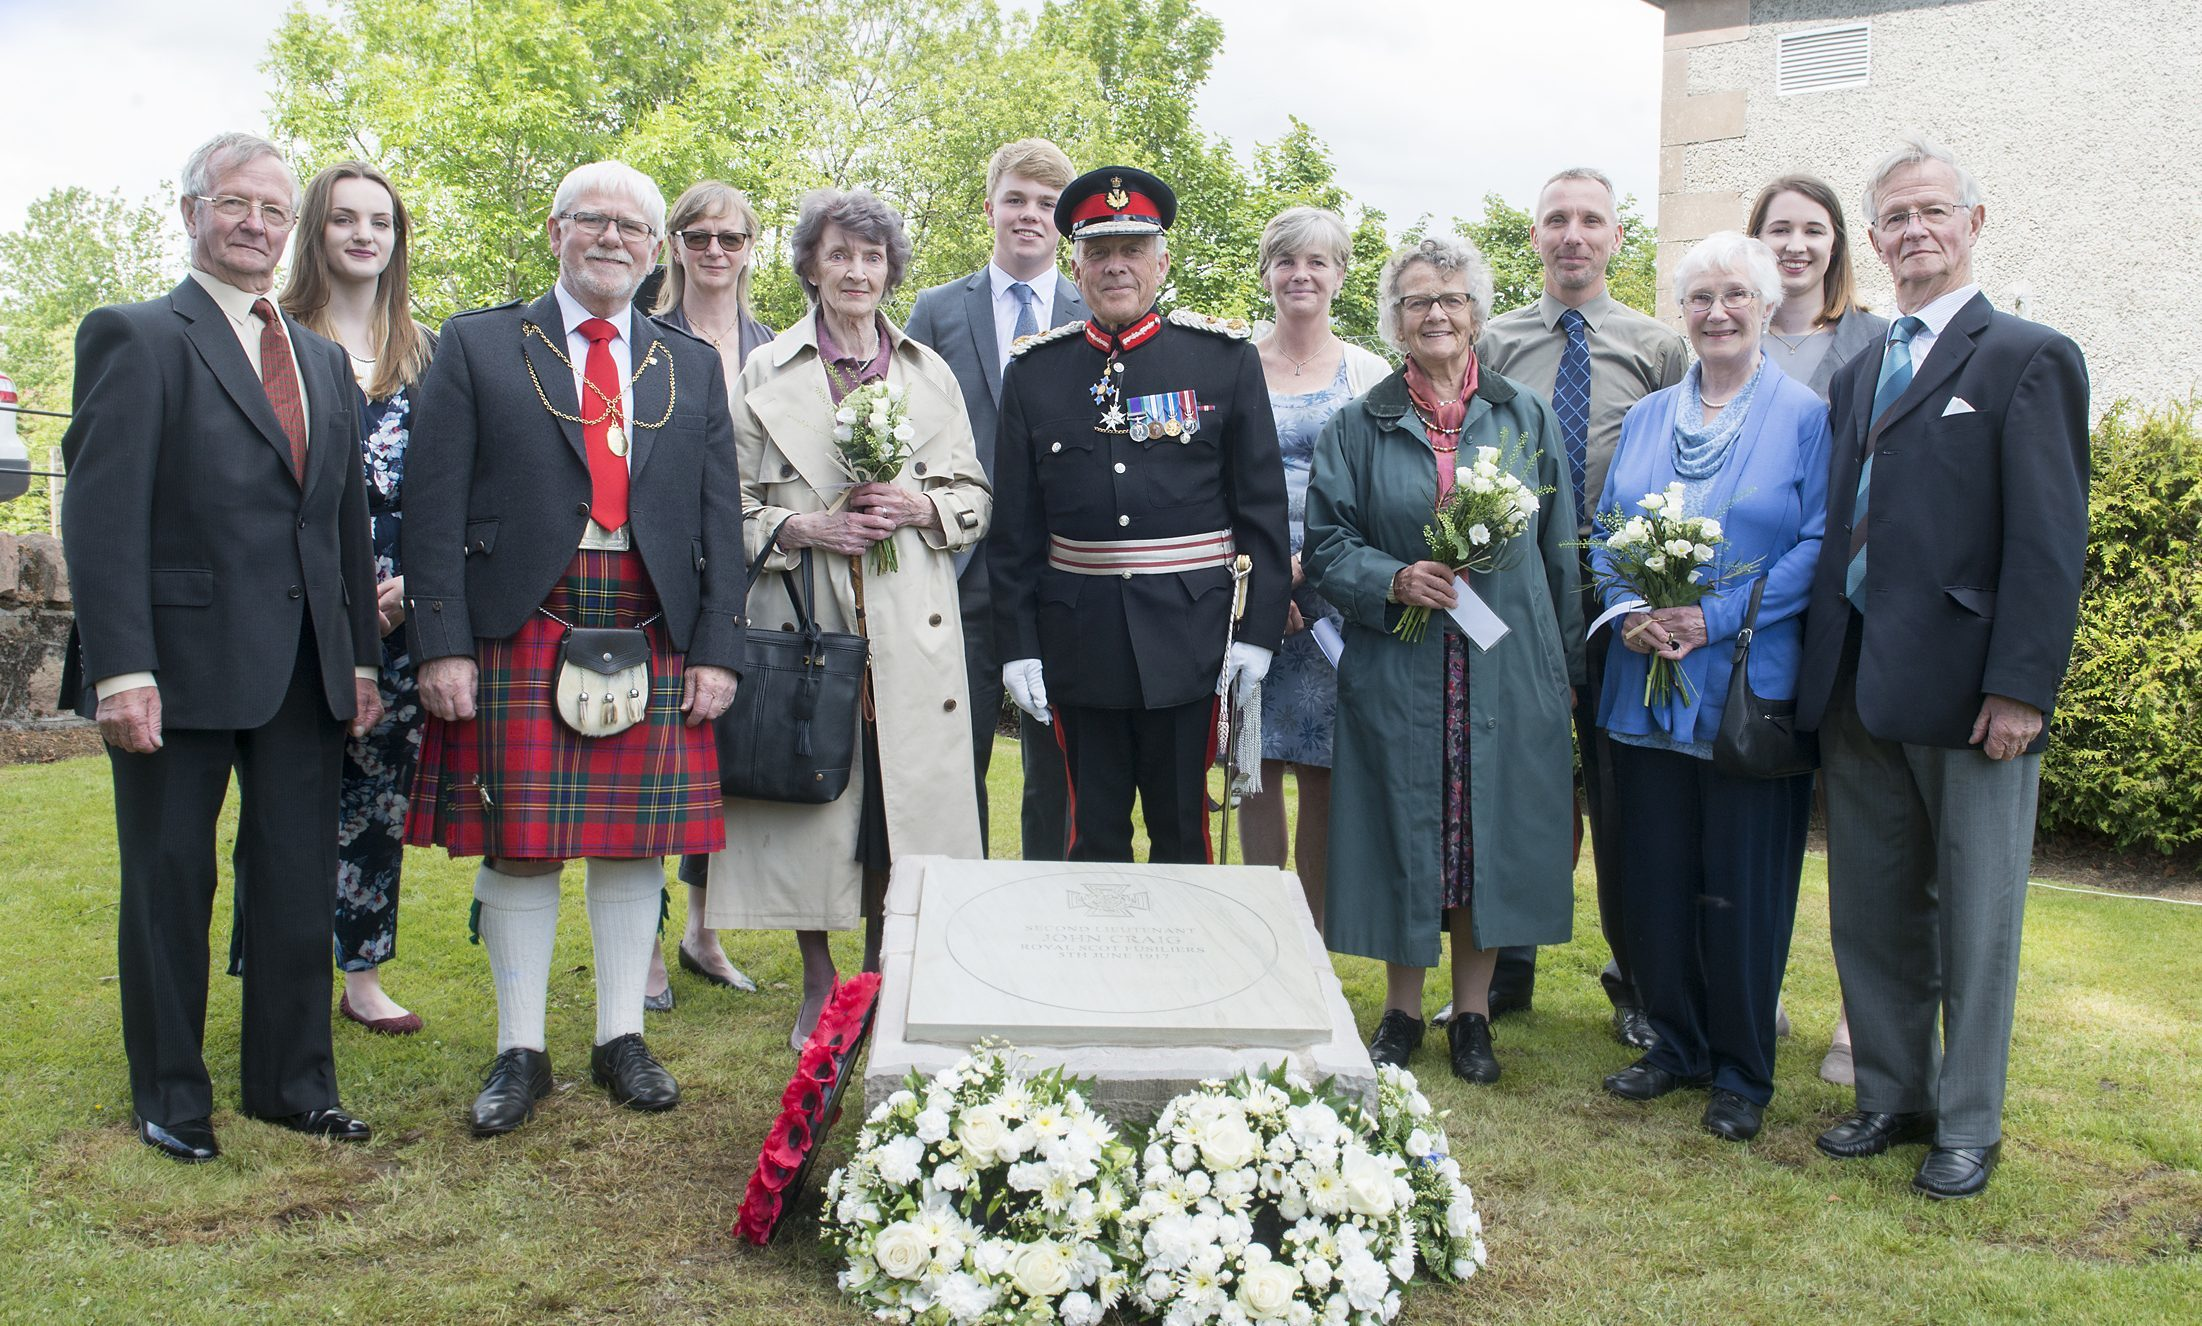 John Manson Craig VC  Photo, Pictured at the ceremony in Comrie, Lord Lieutenant Mel Jameson is Pictuerd With Perth Provost Dennis Melloy  and members of the John Craig family pictured by the memorial stone.